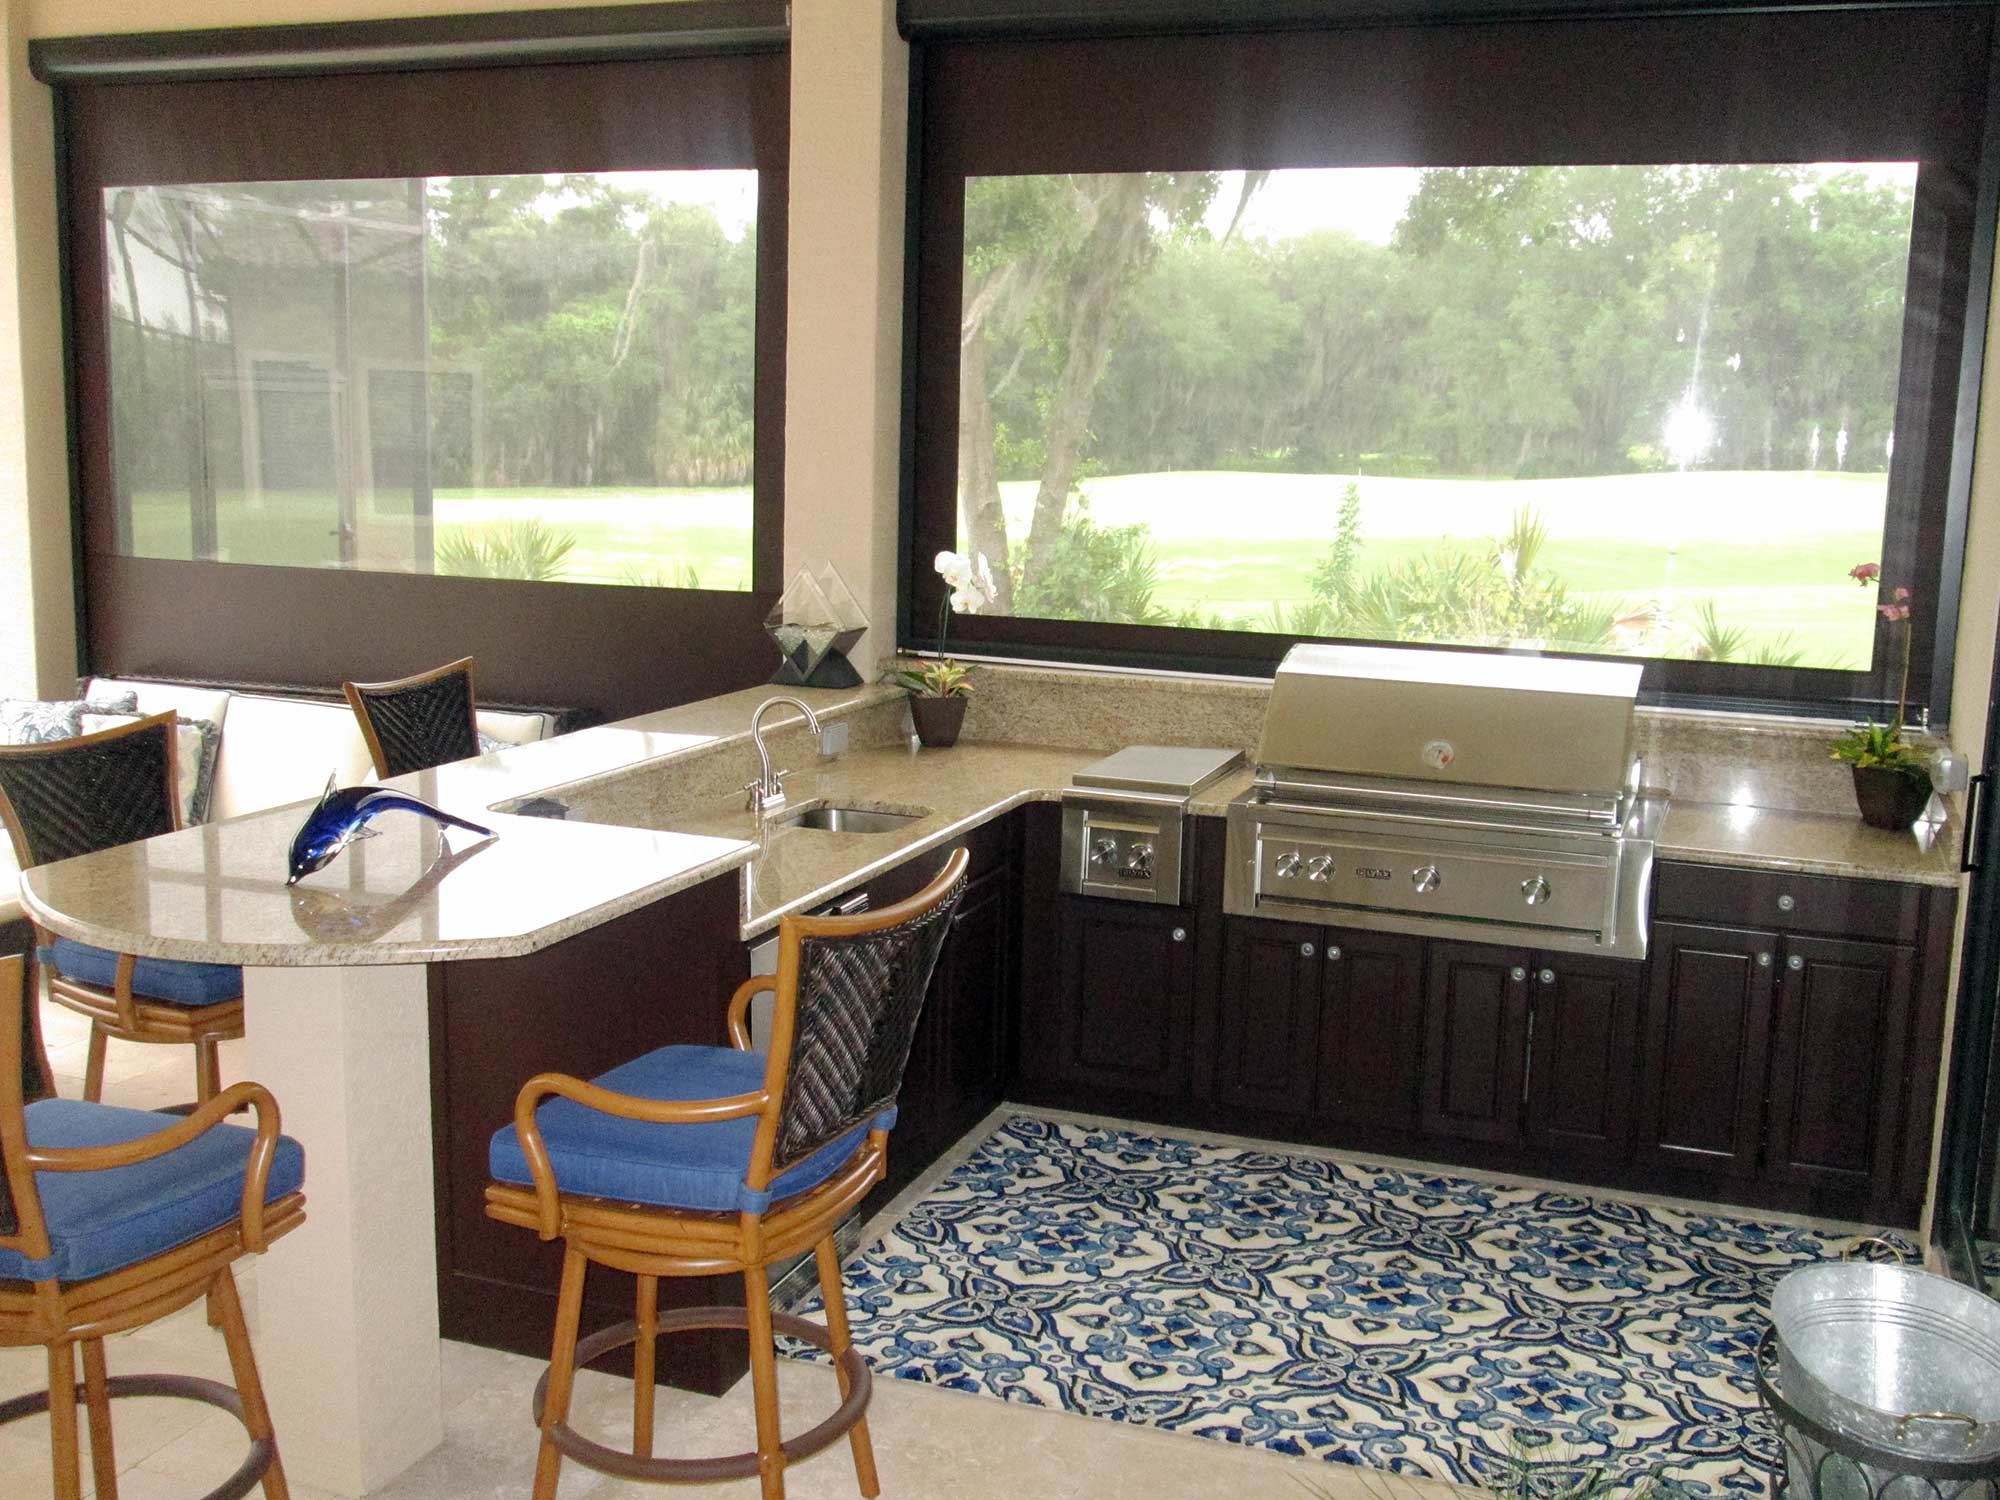 outdoor kitchen cabinets tampa outdoor kitchen cabinets Outdoor Kitchen Cabinets More Quality